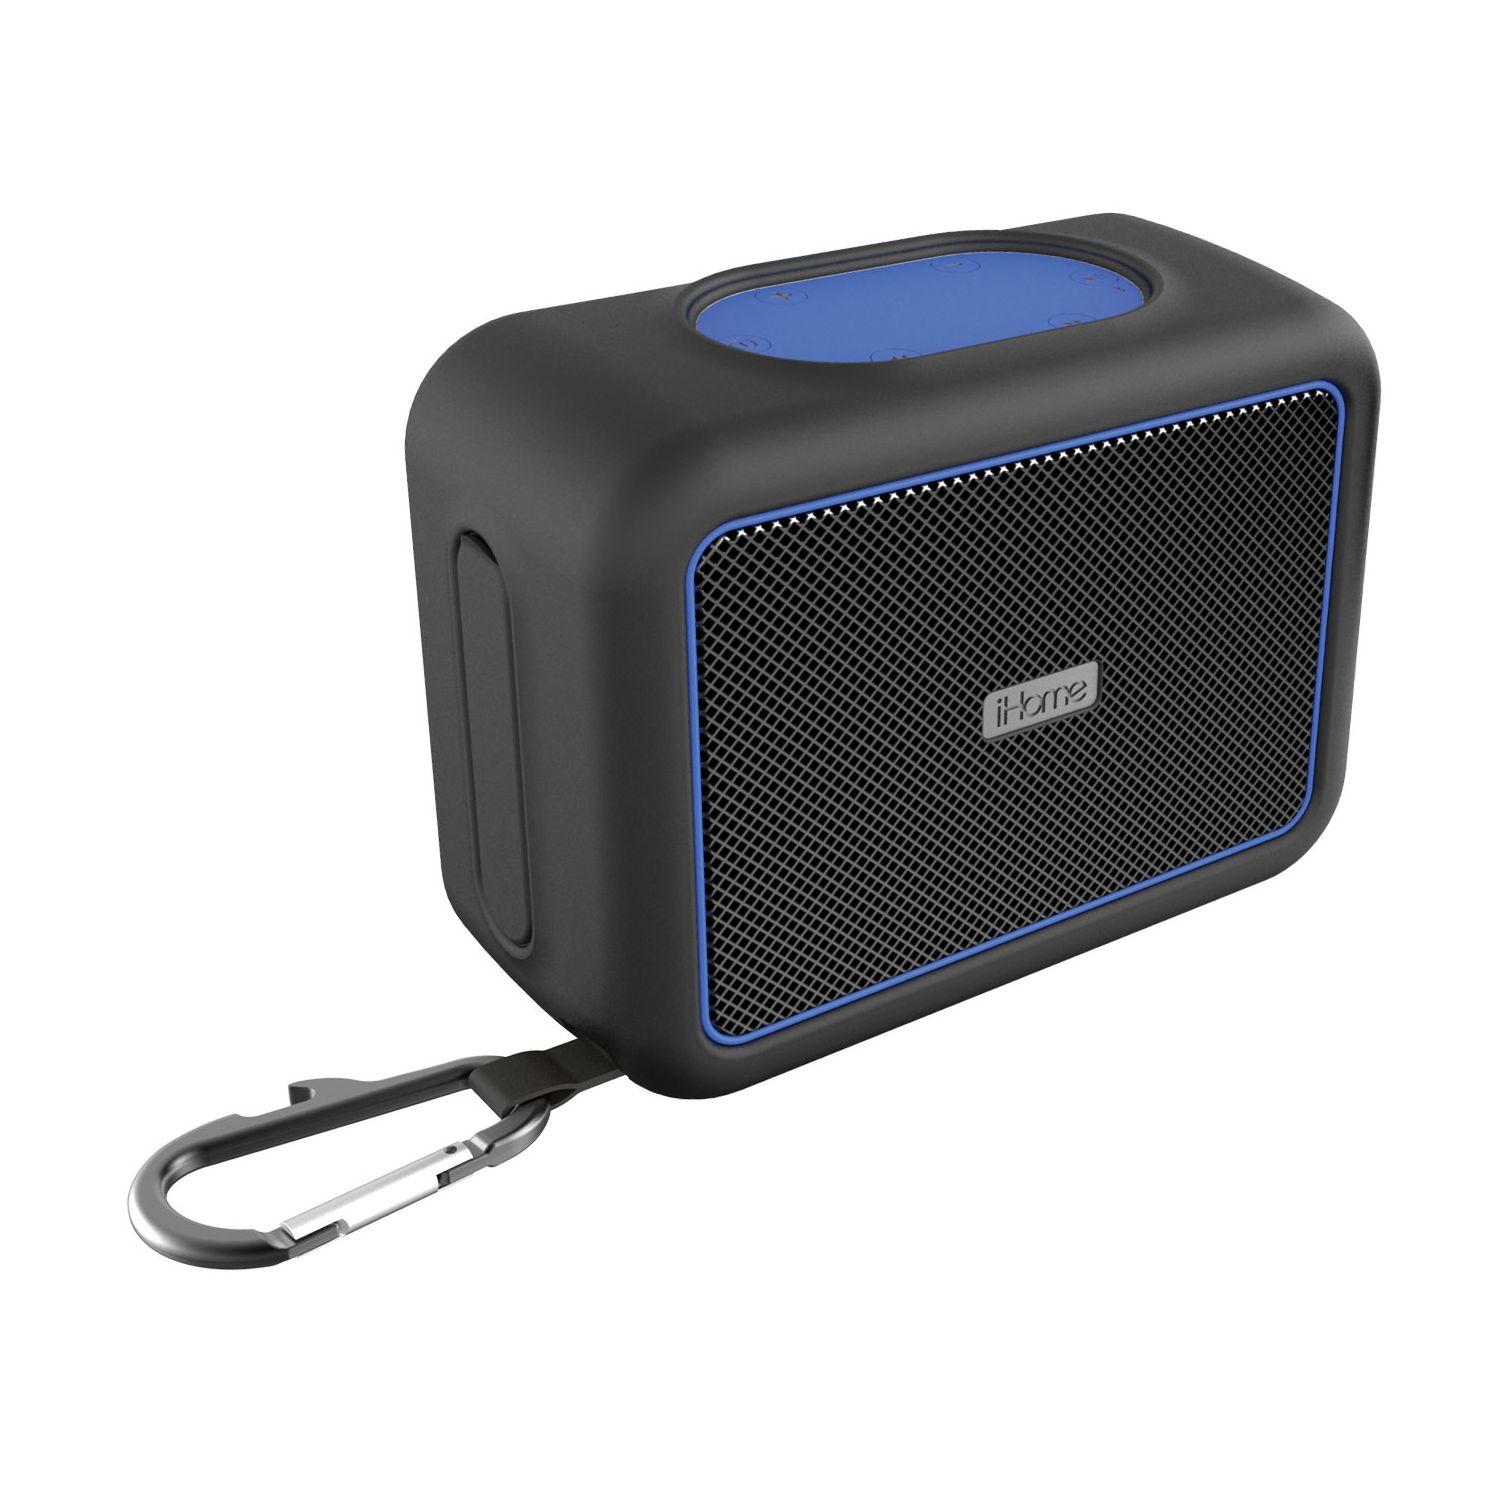 Audio & Speakers Deals, Coupons, Promo Codes - Page 2 of 23